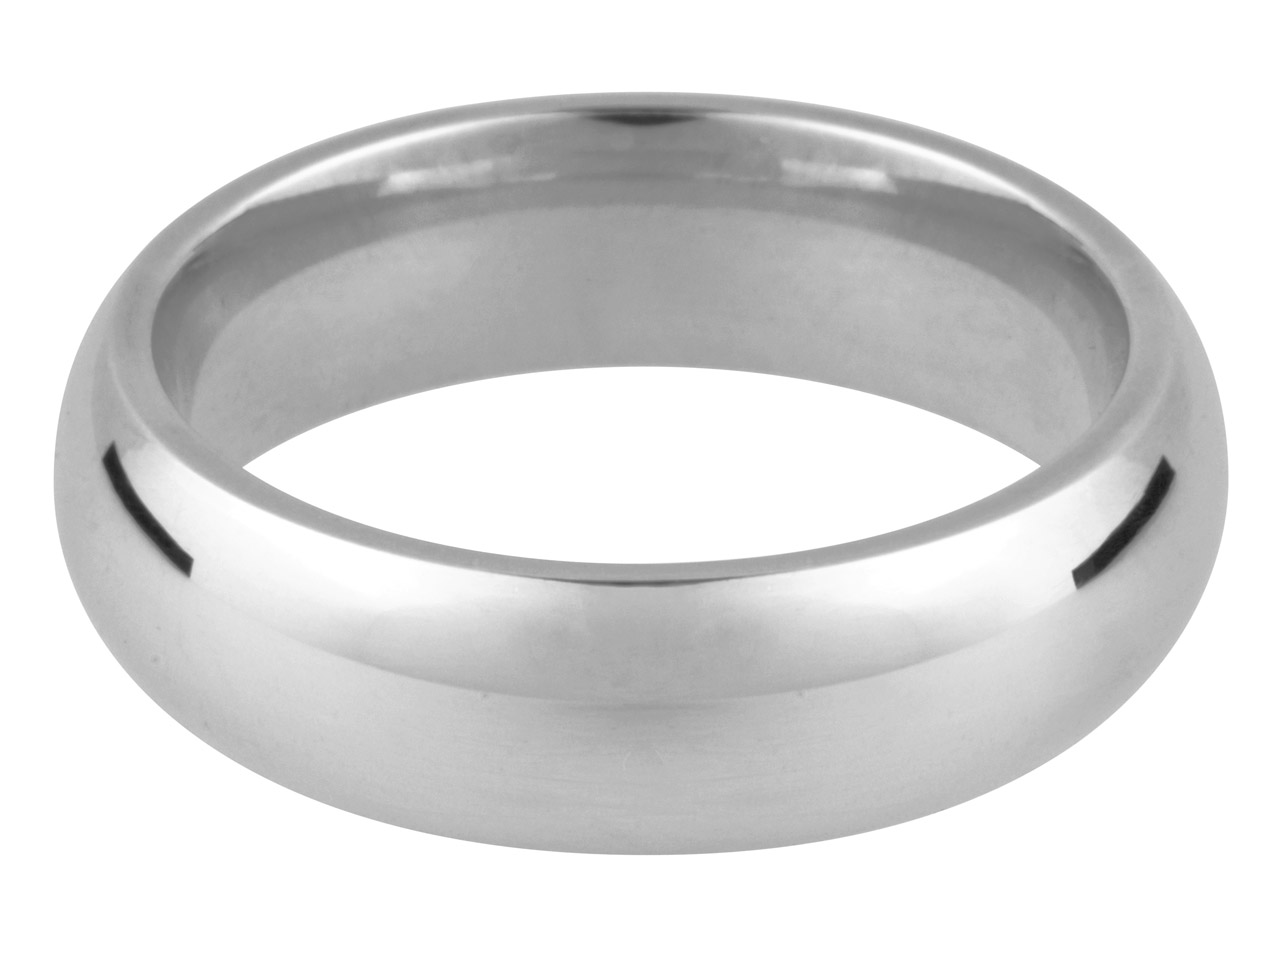 18ct White Court Wedding Ring 6.0mm X 10.9gms Medium Weight Hallmarked  Wall Thickness 1.98mm